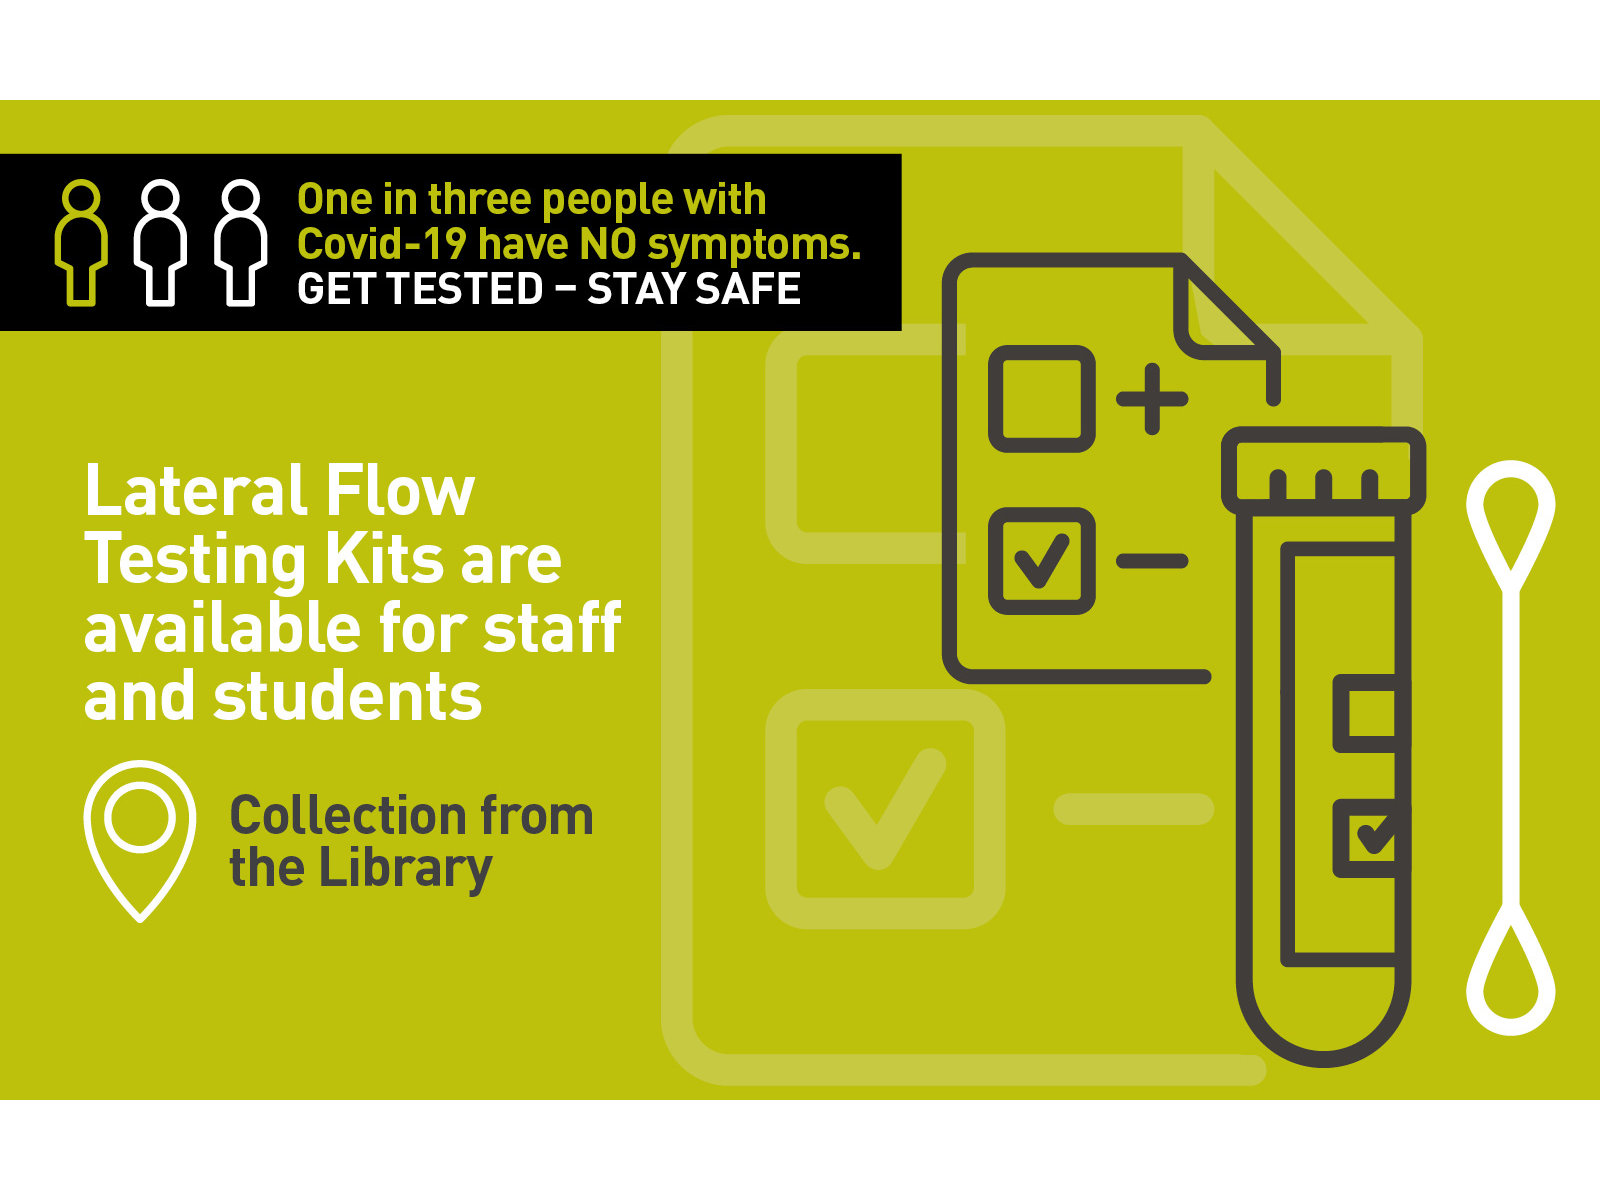 Covid-19 Lateral Flow Testing Kits are available for staff and students. Collection from Library.